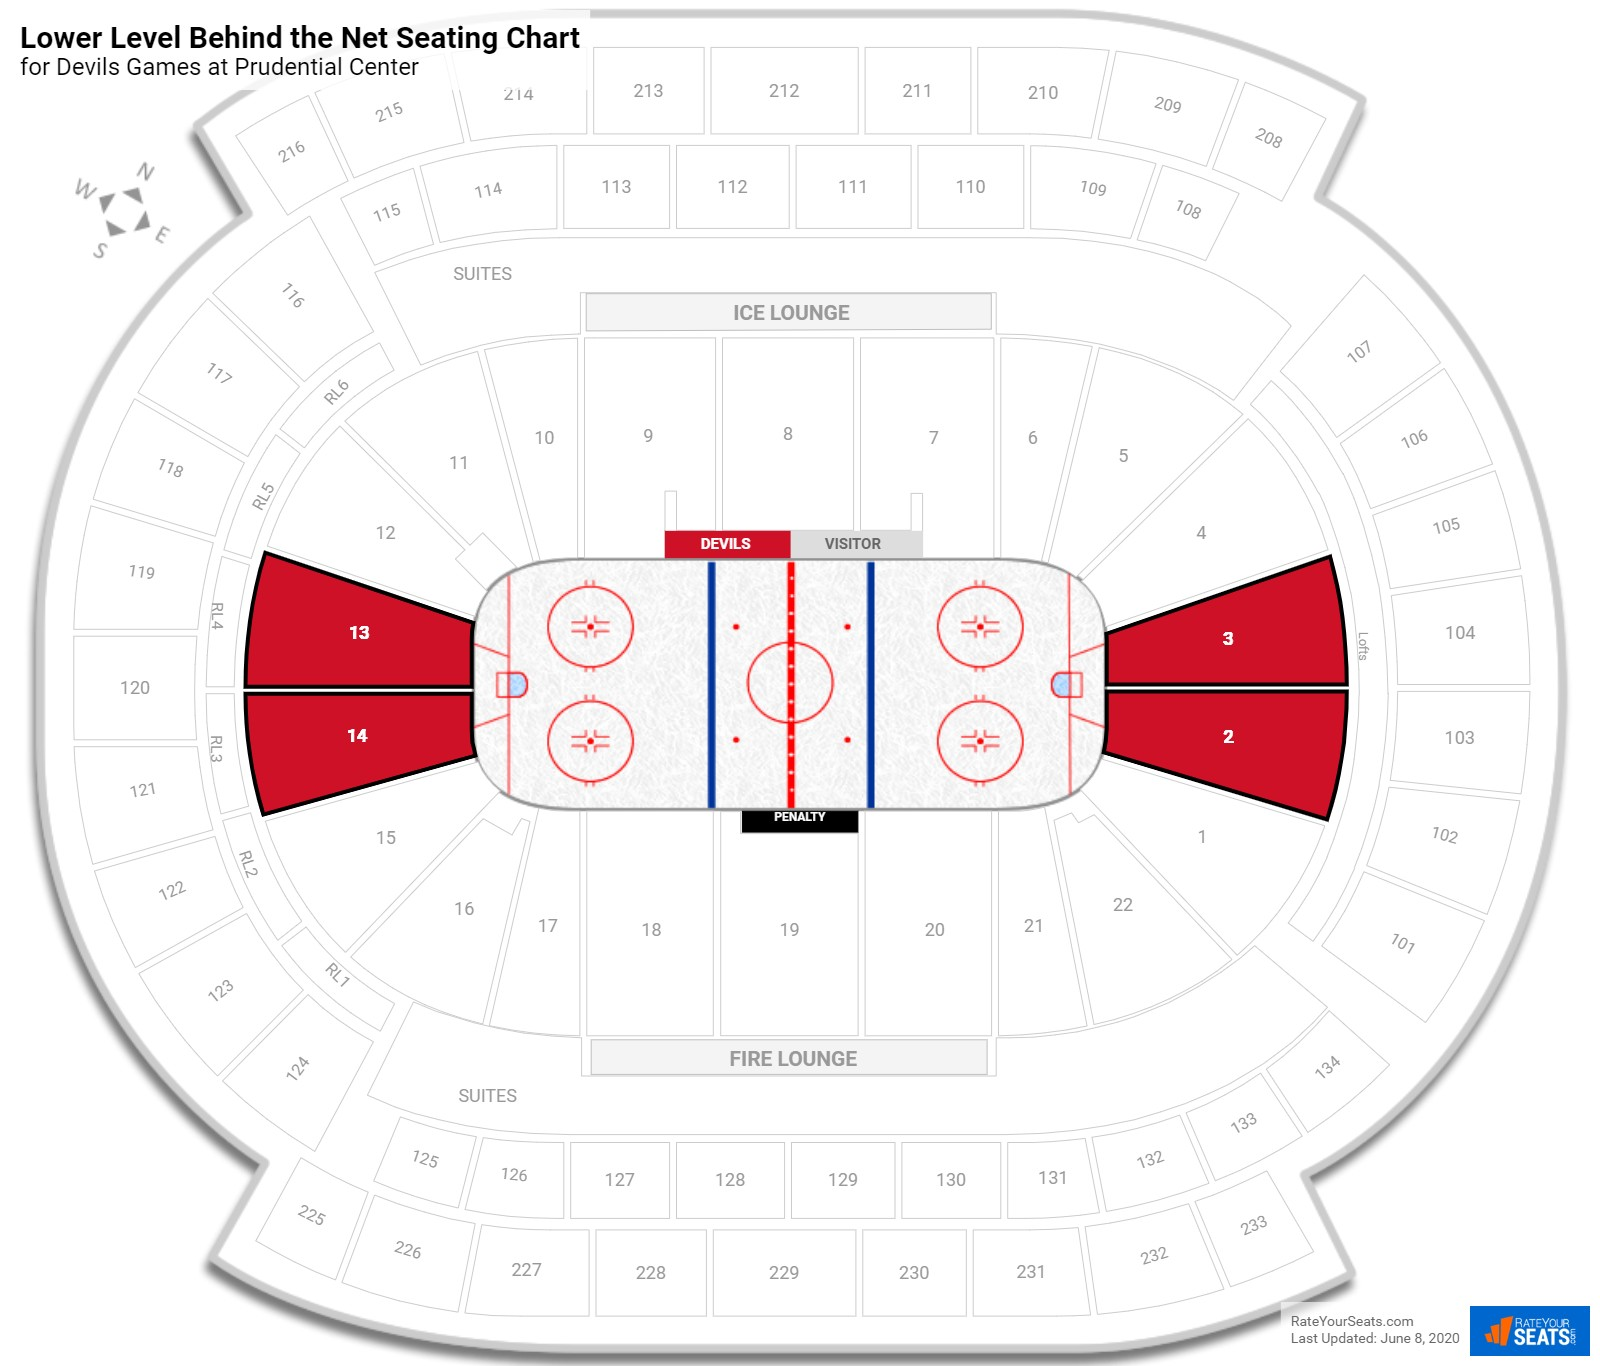 Prudential Center Lower Level Behind the Net seating chart